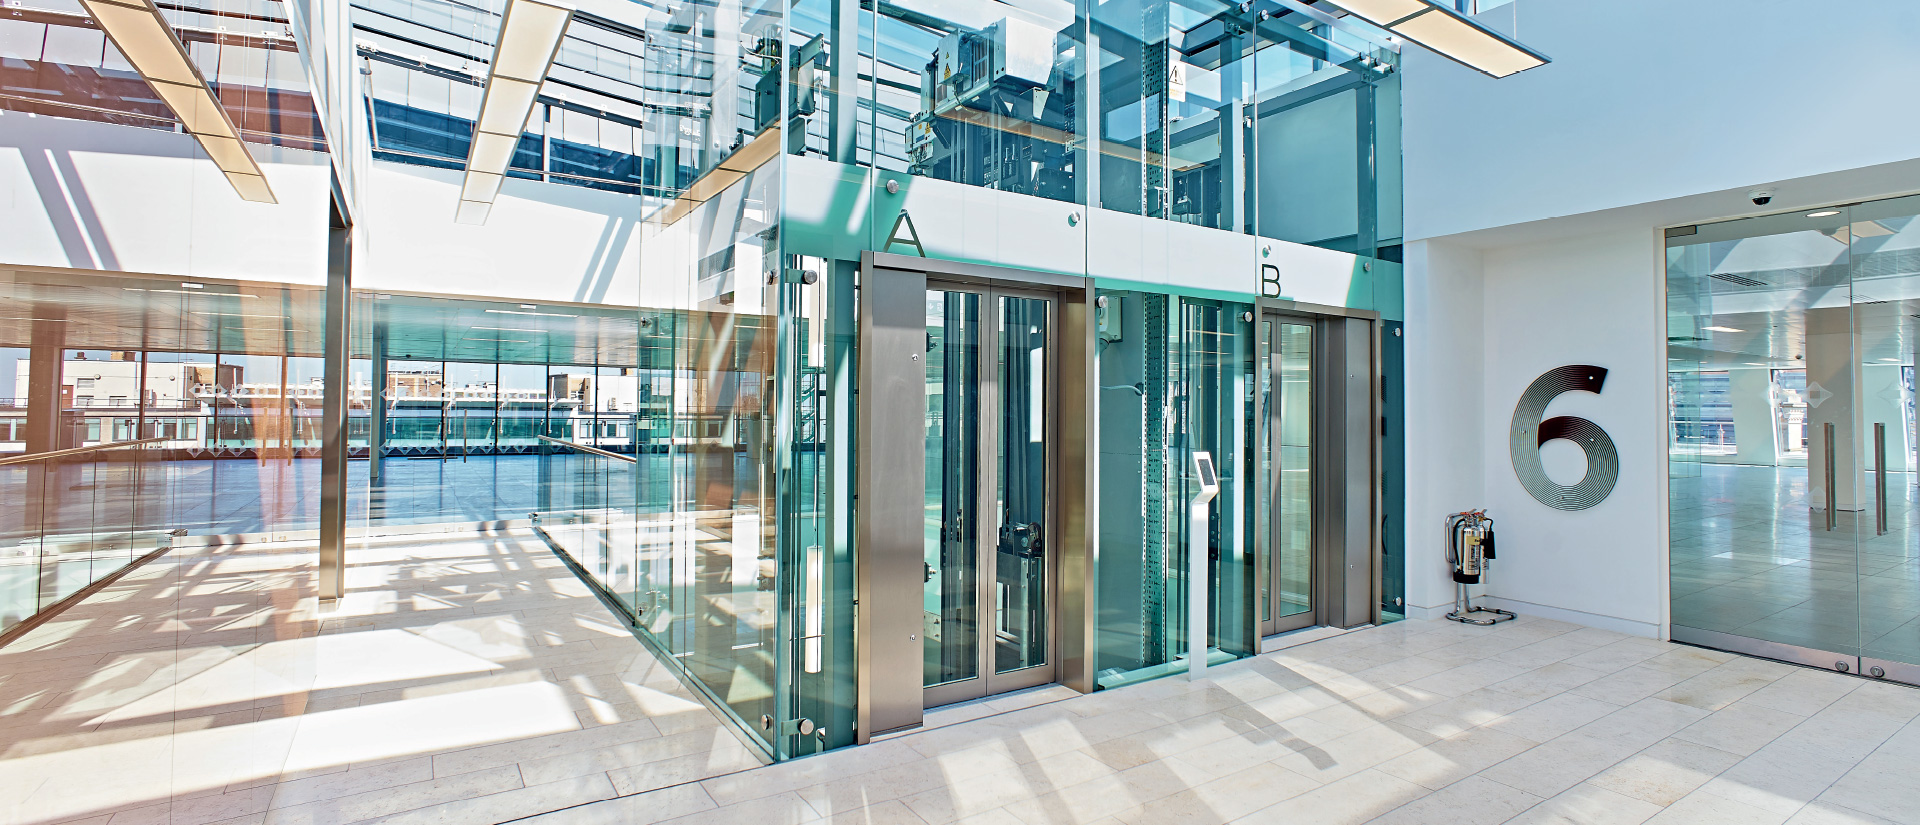 55 Colmore Row Lifts